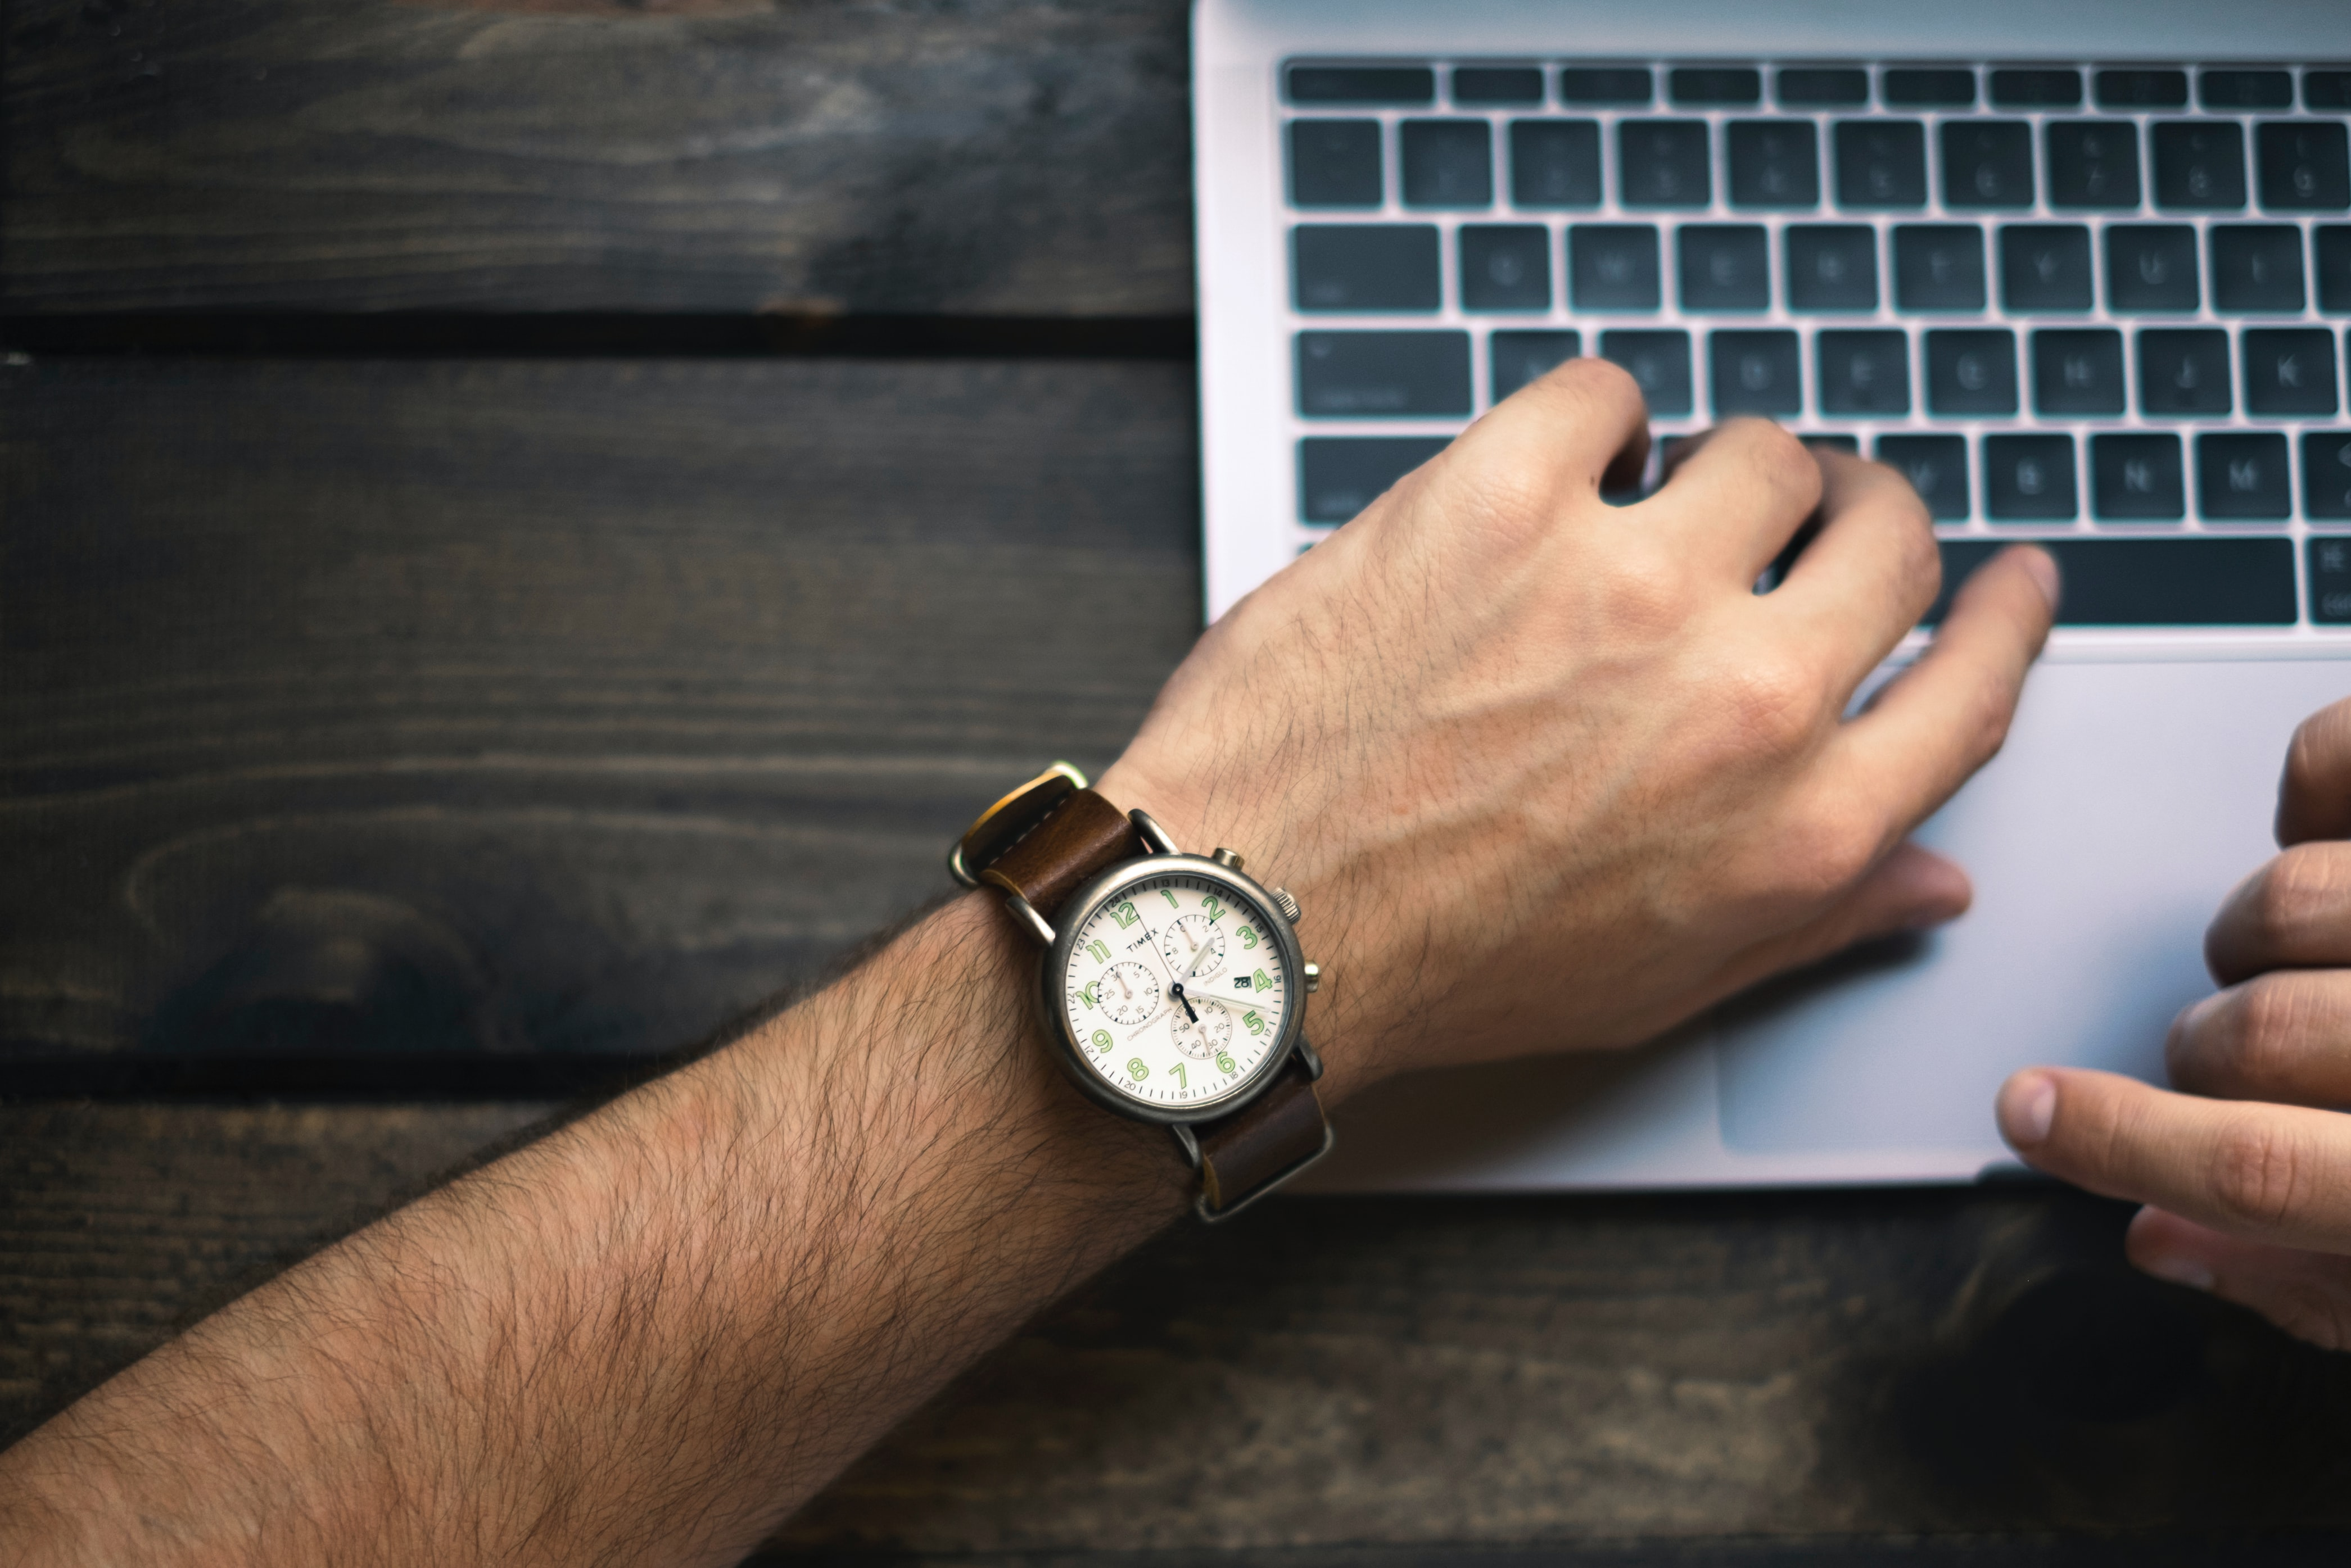 6 Reasons Why Time Tracking Is Important For Your Business